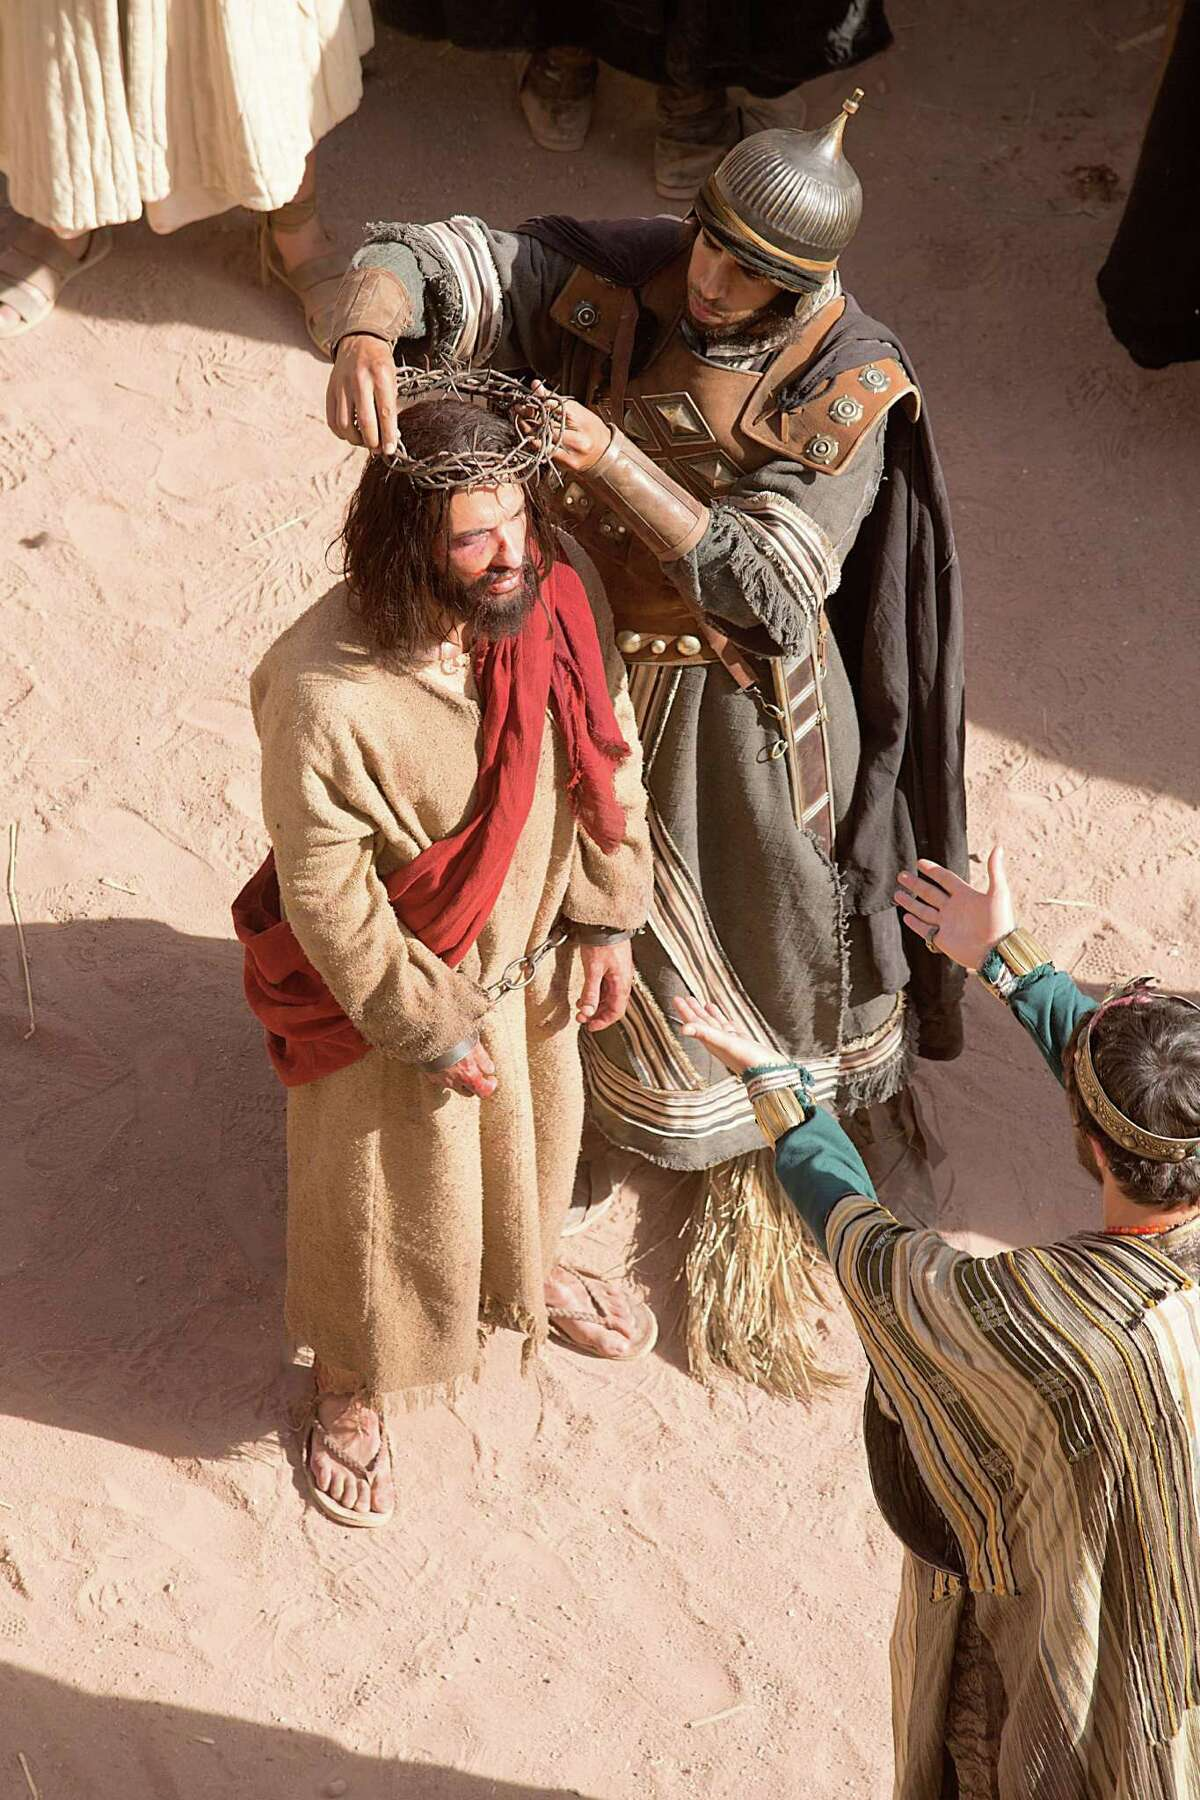 """A crown of thorns is placed on the head of Jesus (Haaz Sleiman) in National Geographic Channel's """"Killing Jesus,"""" airing March 29 A crown of thorns is placed on the head of Jesus.é¢â'¨é¢â'¨(photo credit: National Geographic Channels/Kent Eanes)"""